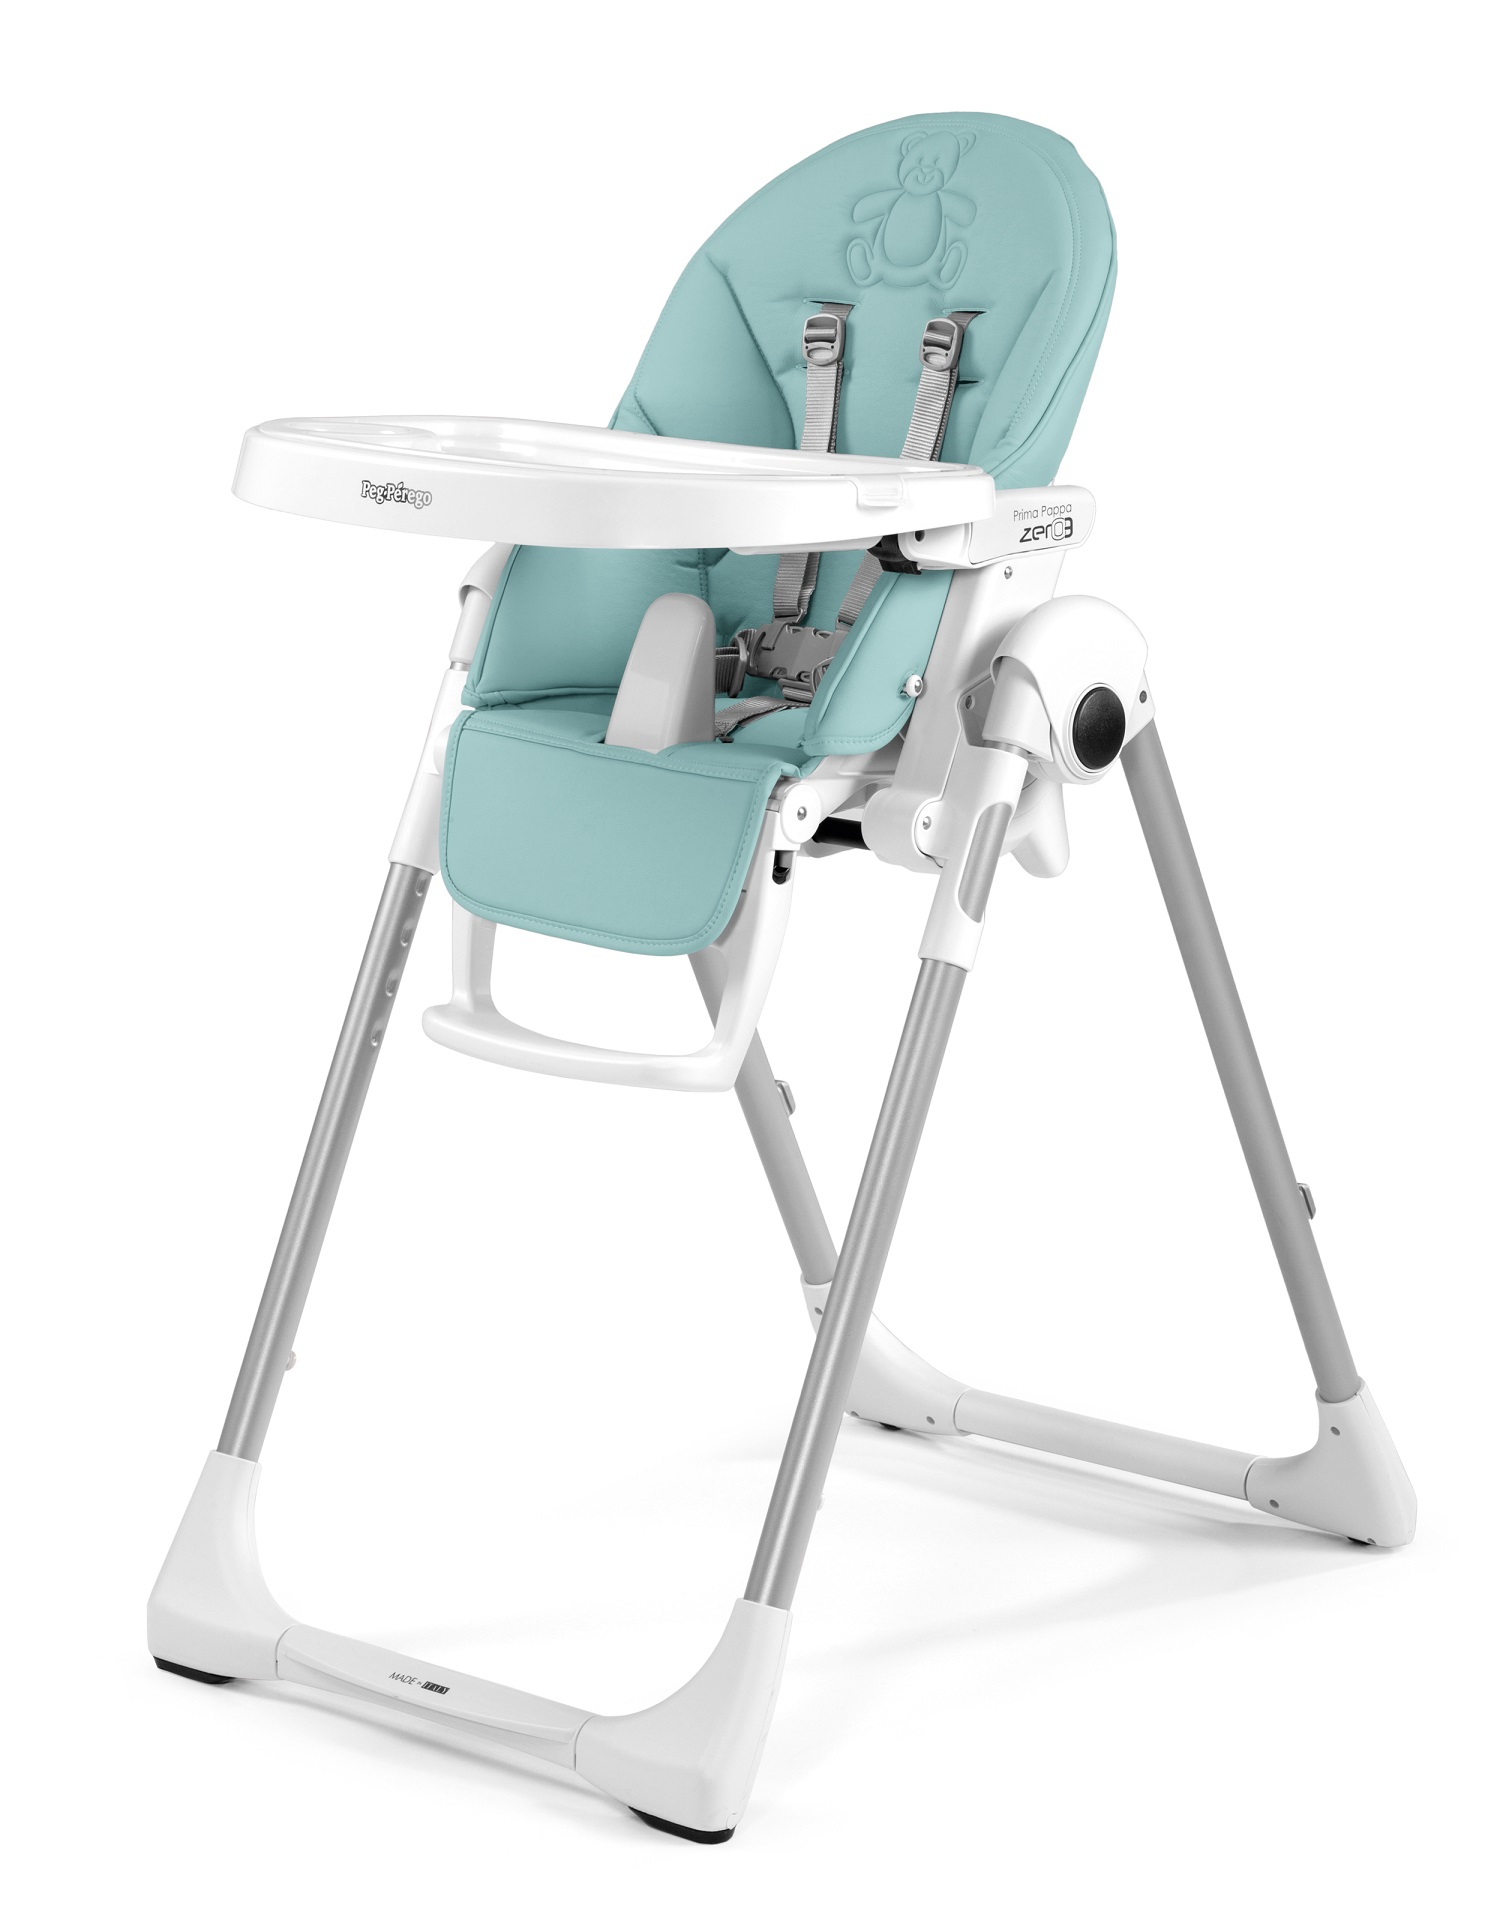 Appealing Chair Prima Pappa Follow Me Bear Azul 2018 Large Image Chair Prima Pappa Follow Me 2018 Bear Azul Buy At Peg Perego Chair Tray Peg Perego Chair Instructions baby Peg Perego High Chair